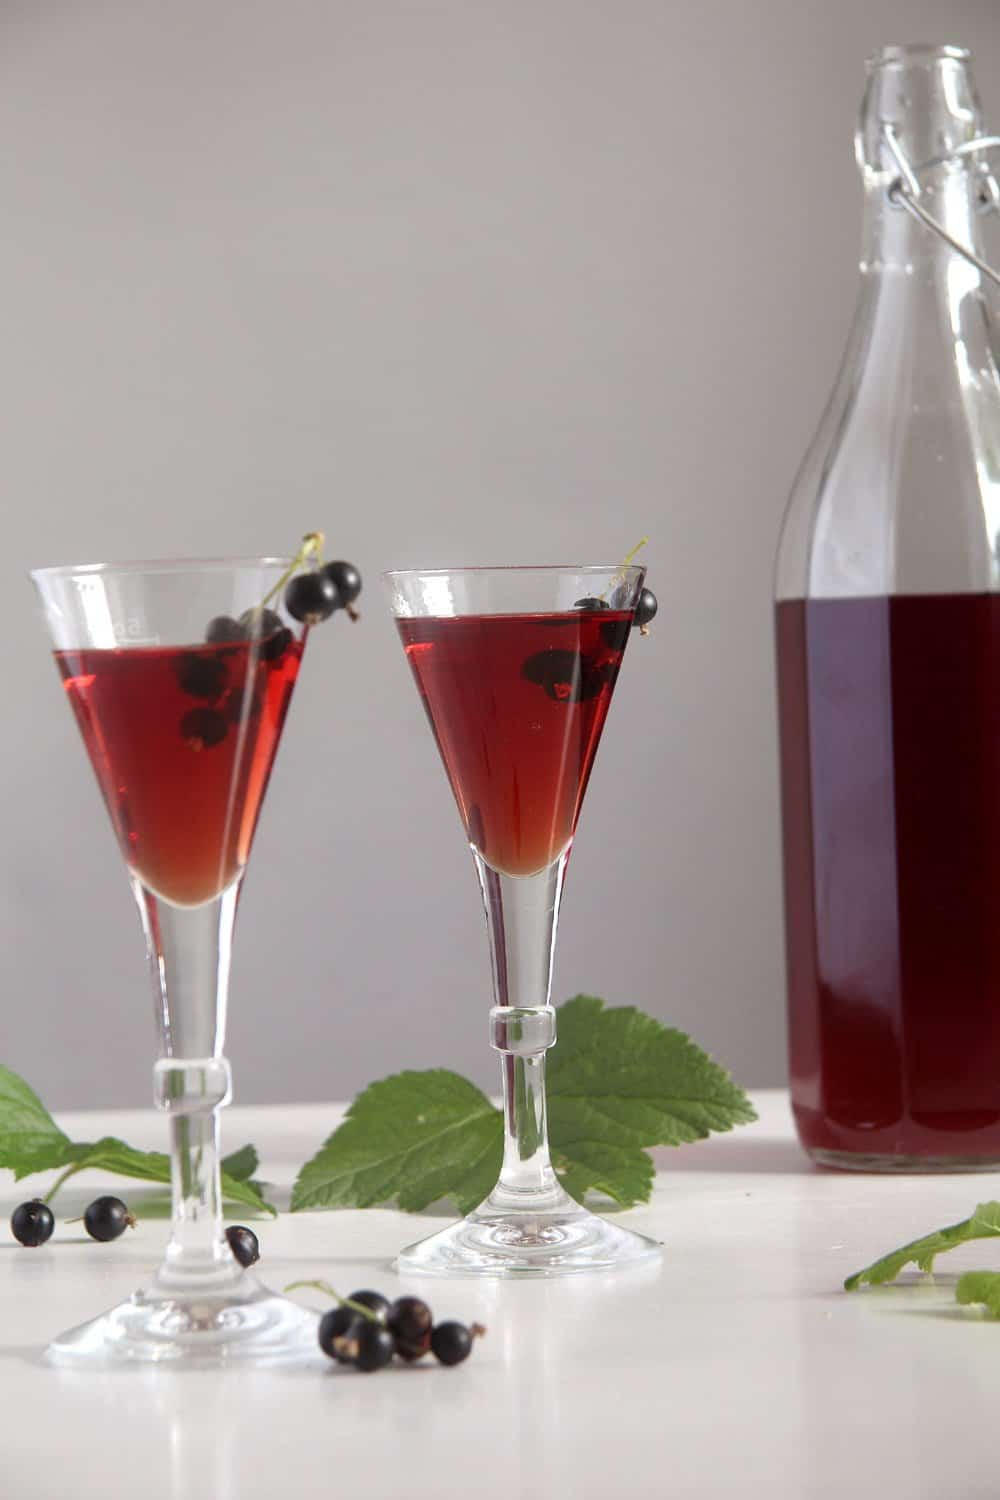 creme cassis drinks Homemade Crème de Cassis or Black Currant Liquor